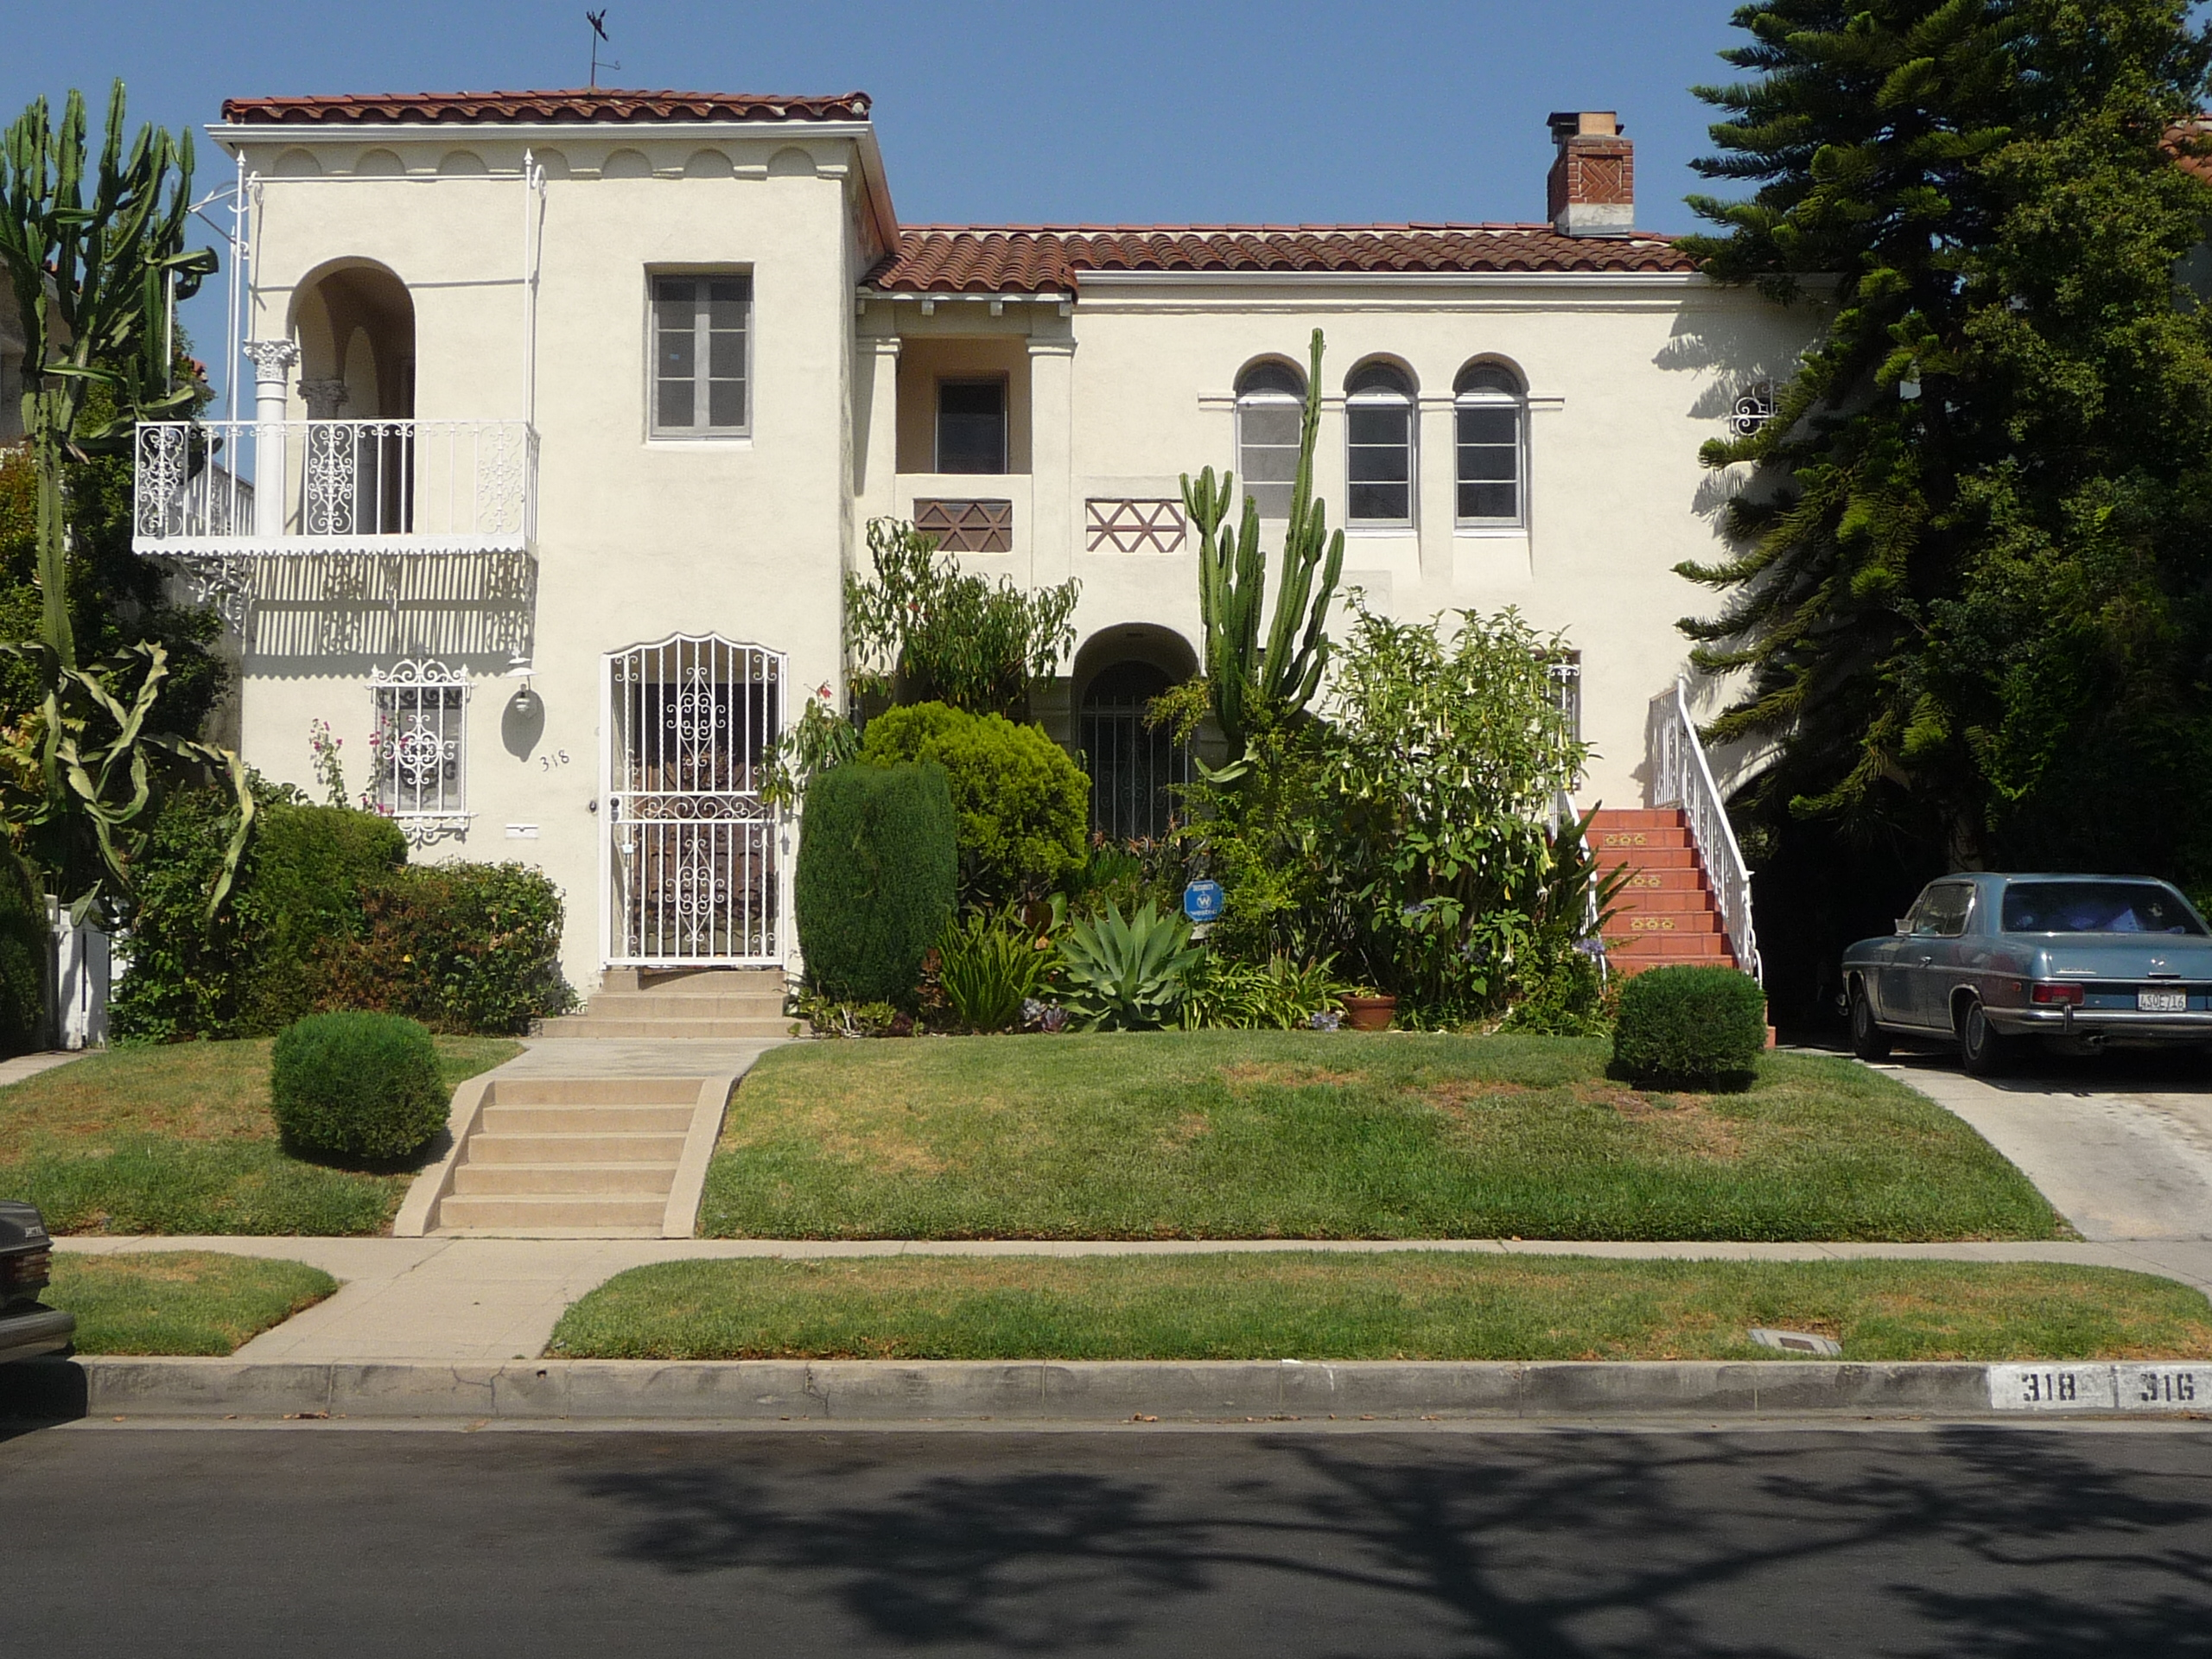 318 N MANSFIELD AVE - PHOTO